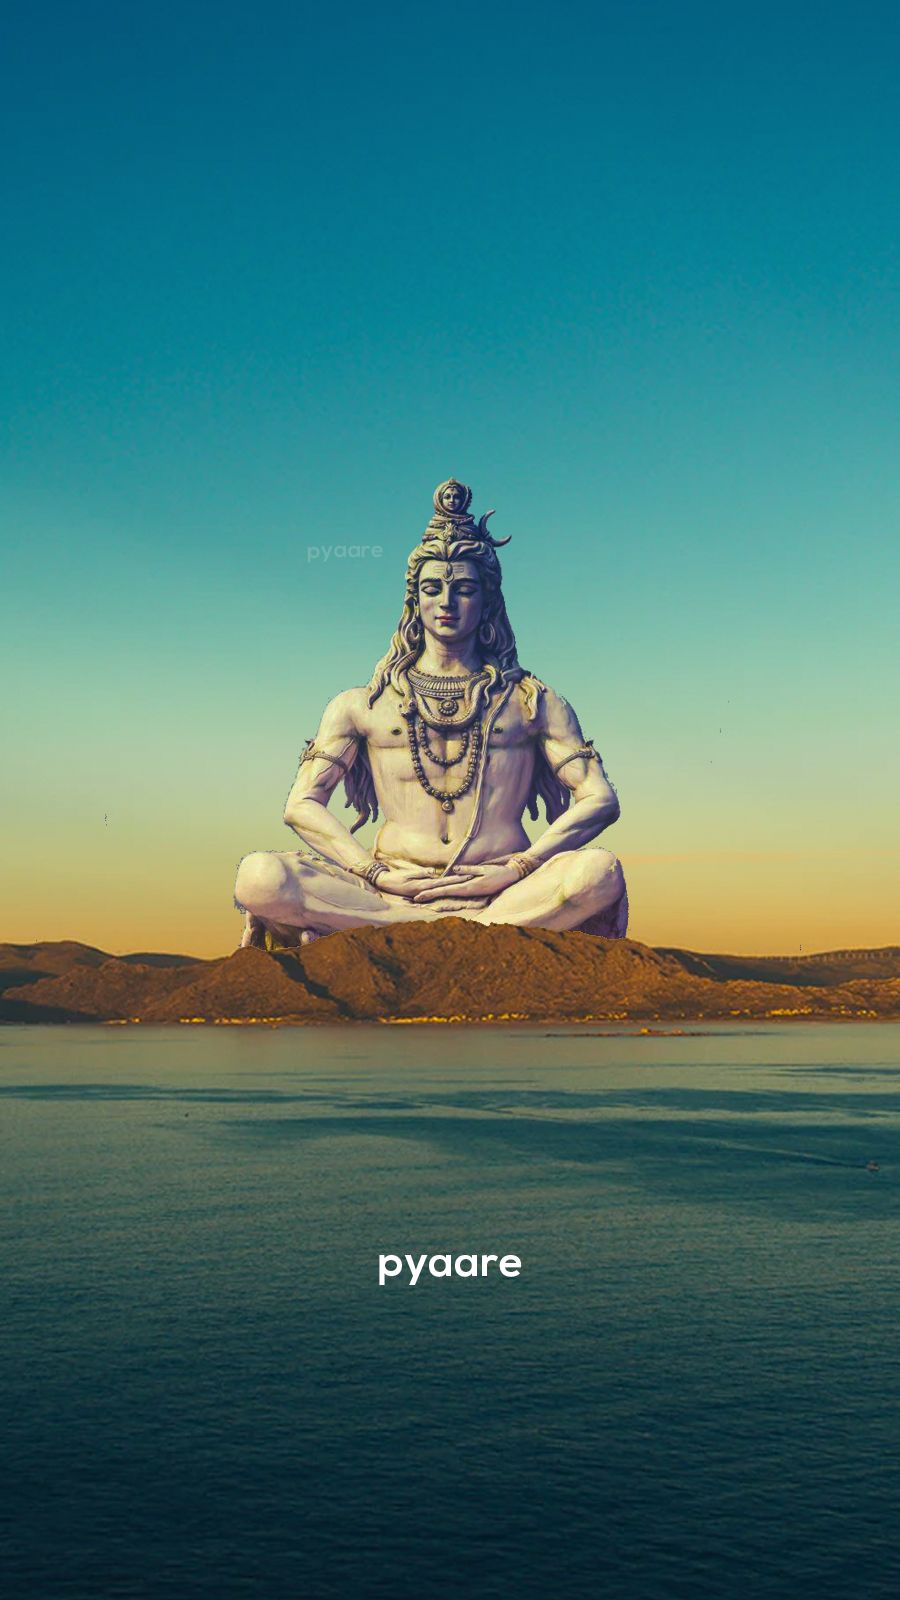 Shiva Sunset Pyaare Com Photos Of Lord Shiva Lord Shiva Statue Shiva Shankara Full hd lord shiva images hd wallpapers